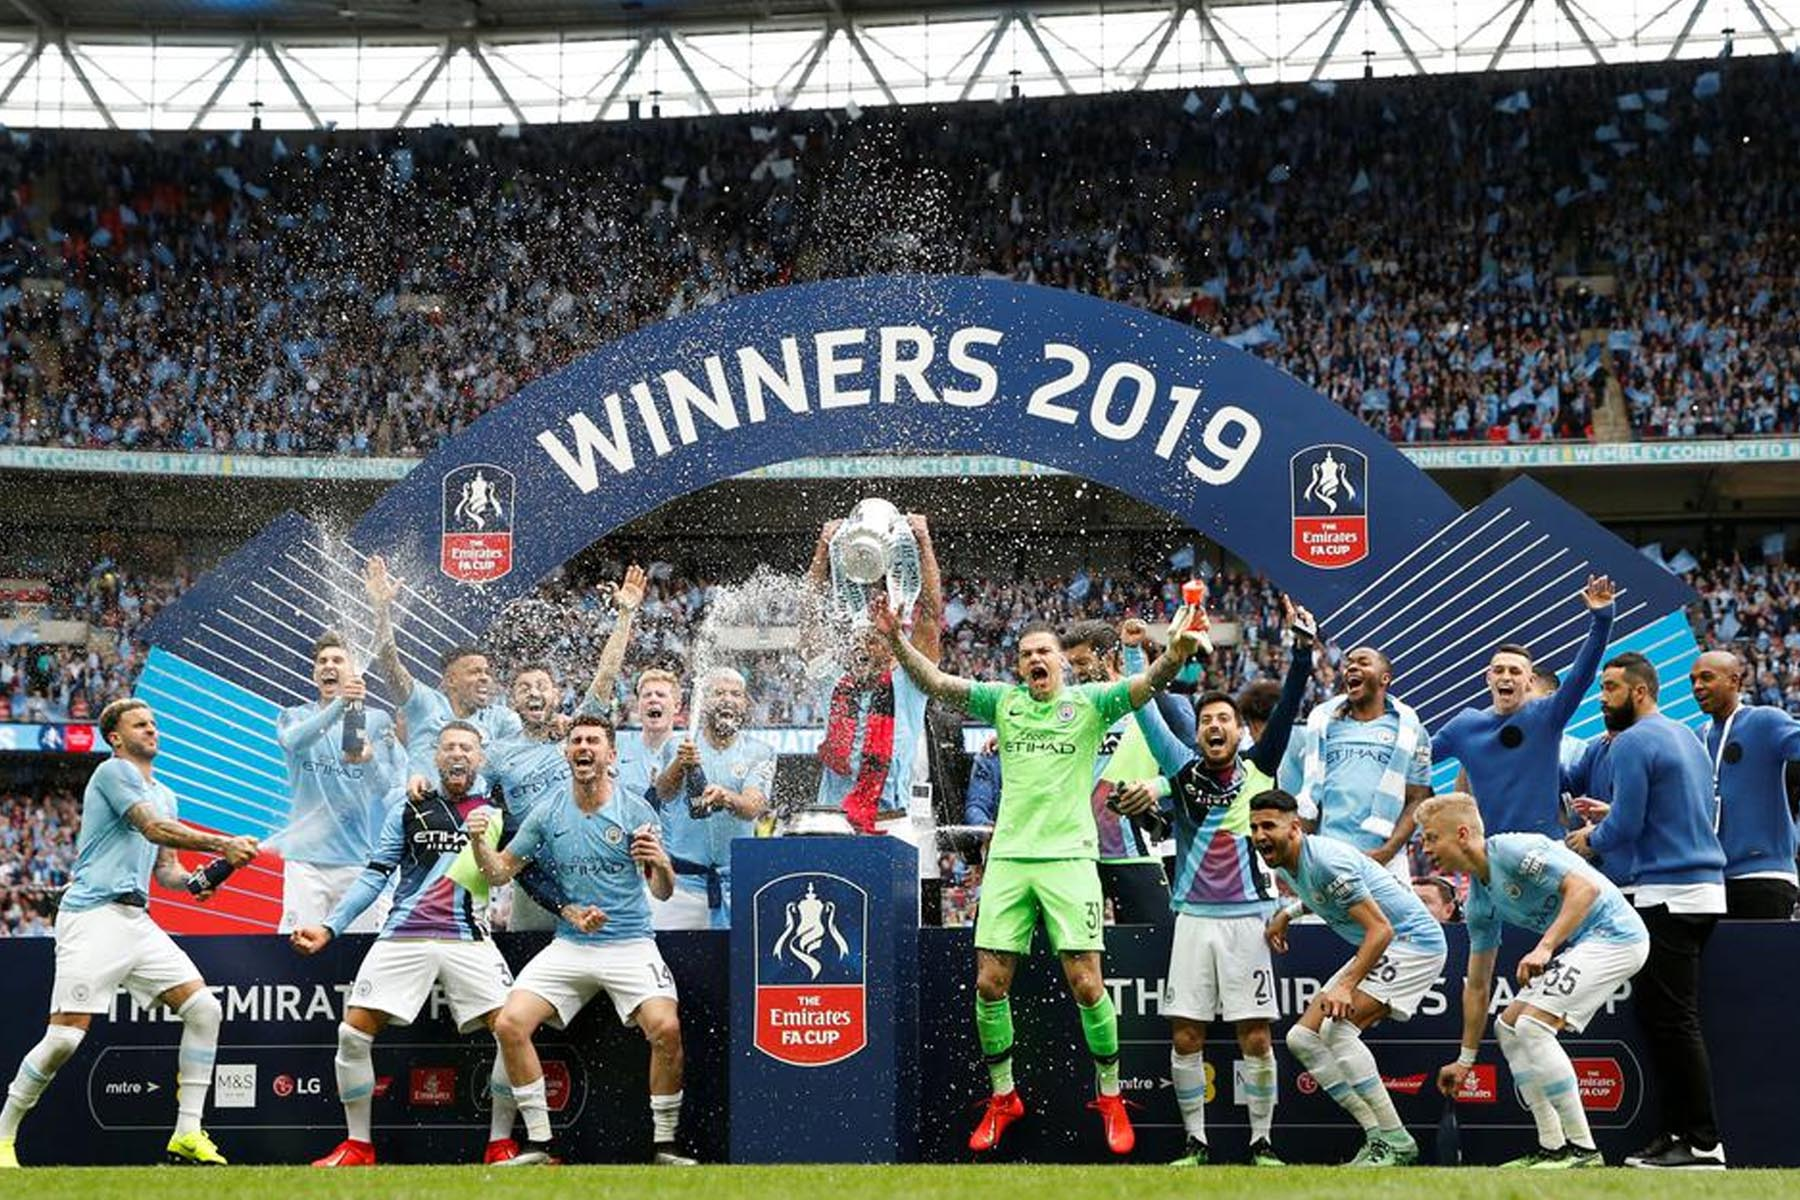 Winners Podium for FA Cup Final 2019